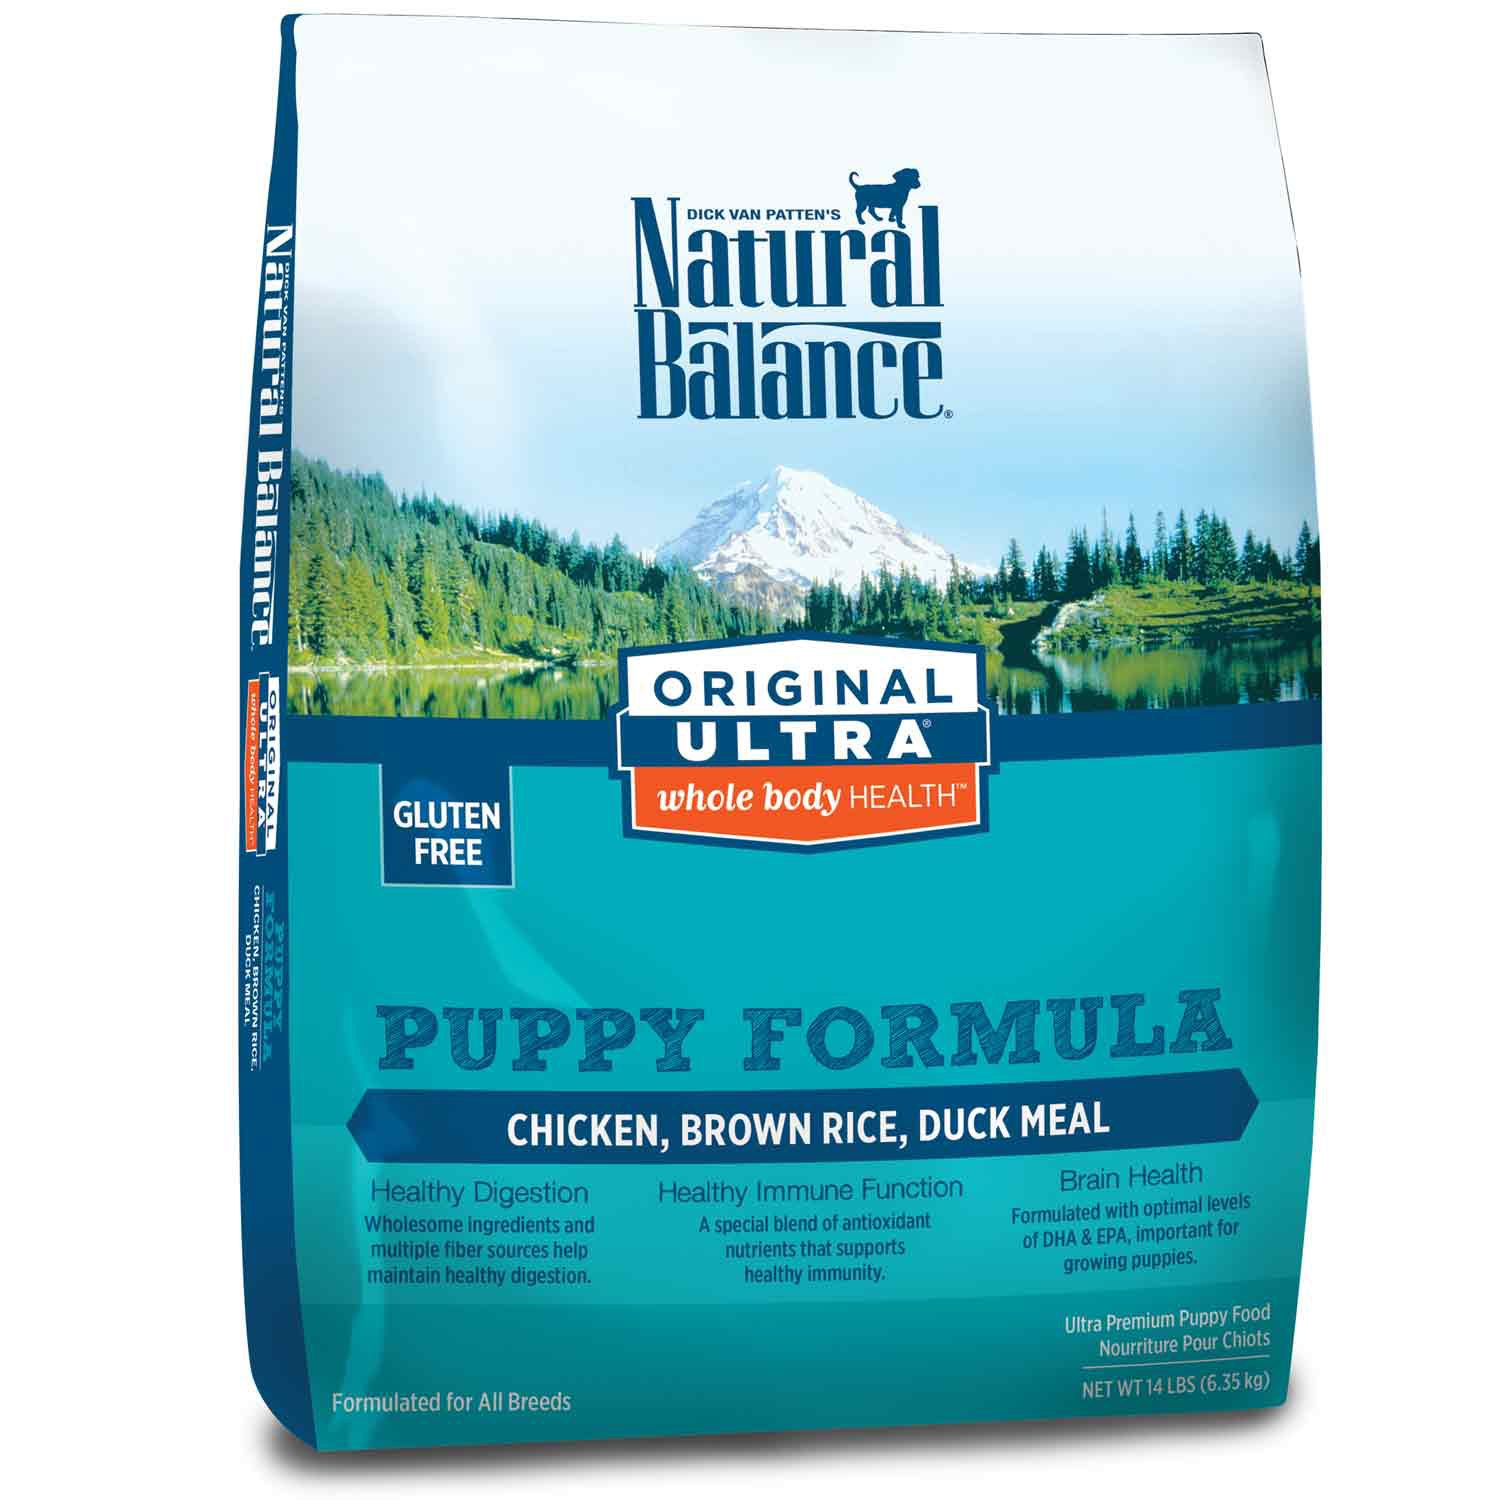 Natural Balance Original Ultra Whole Body Health Chicken Brown Rice & Duck Meal Puppy Food